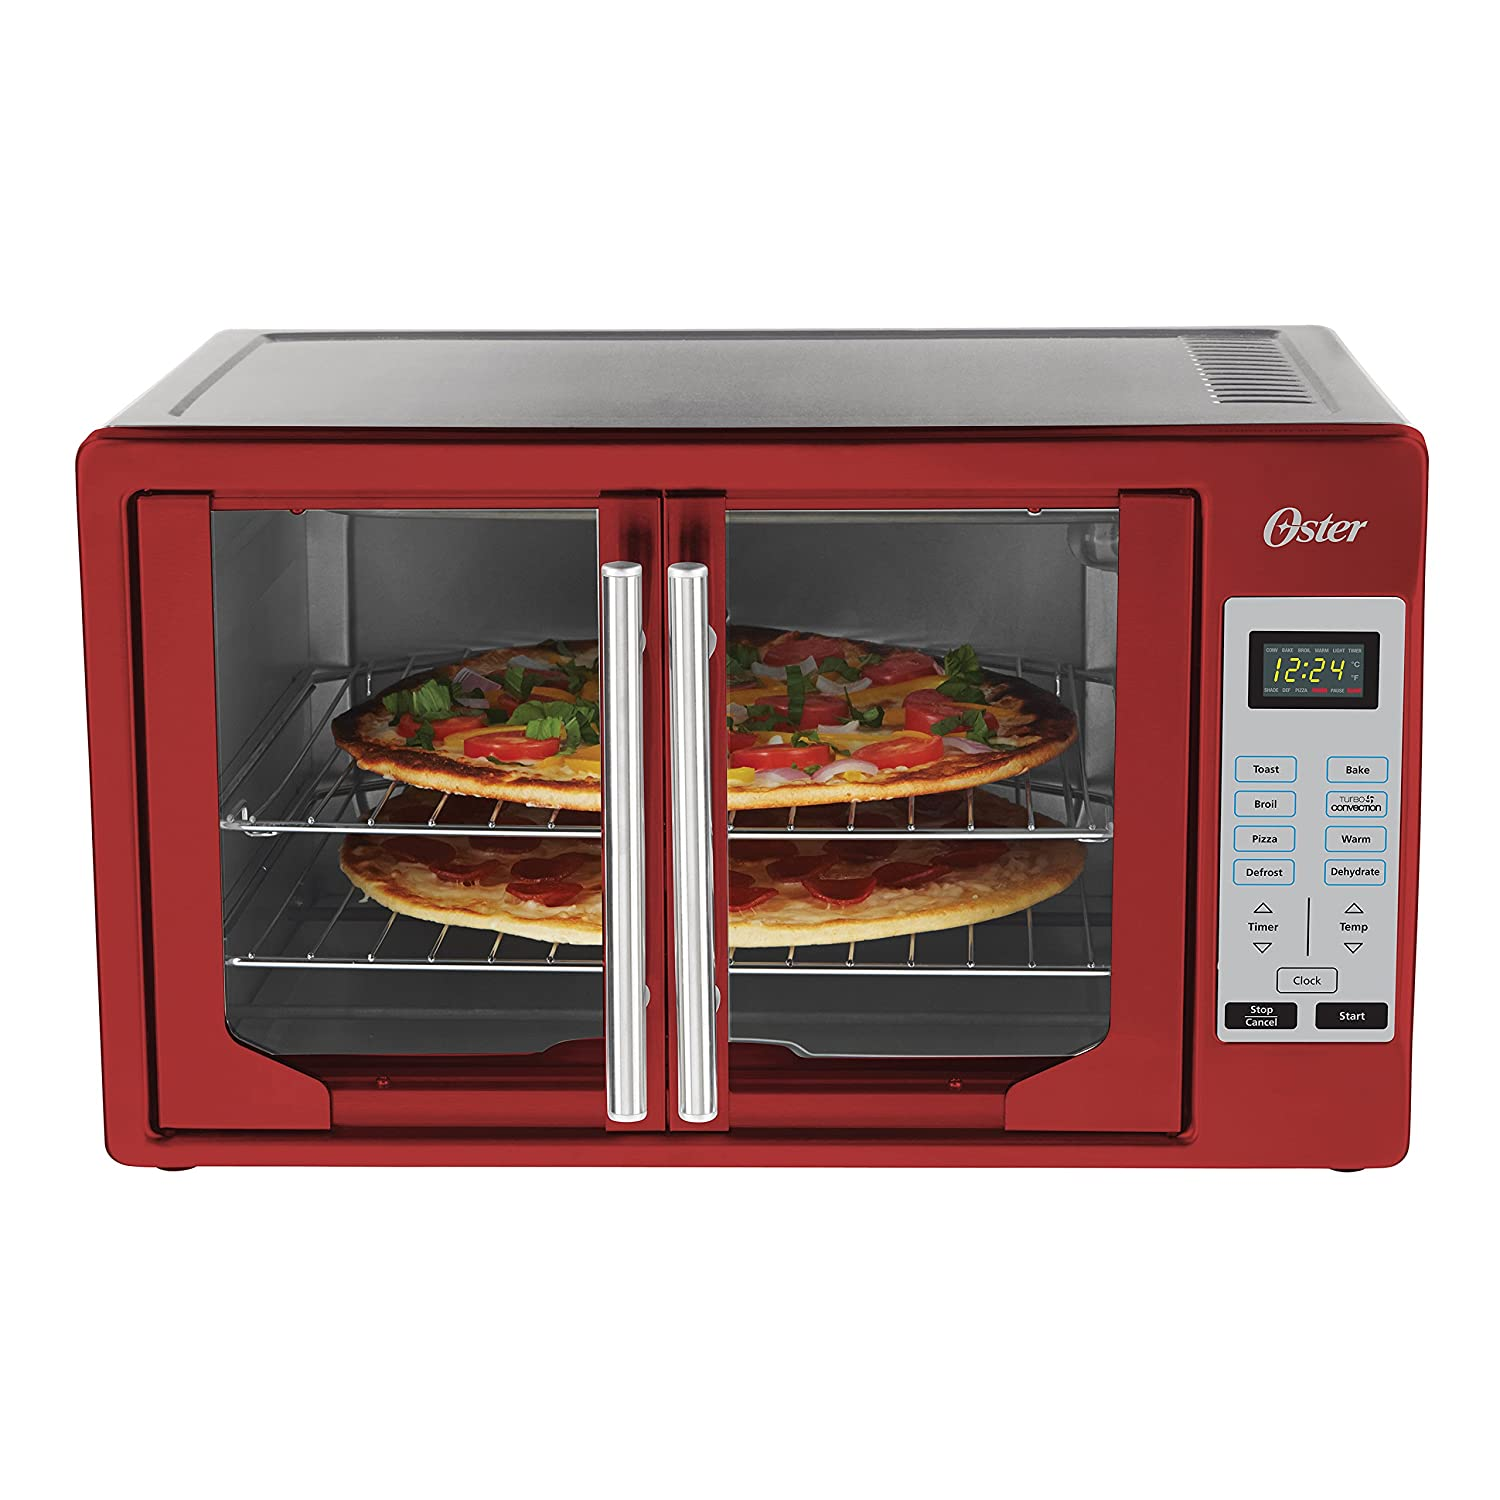 Oster TSSTTVFDDG-R French Door Toaster Oven Extra Large Red